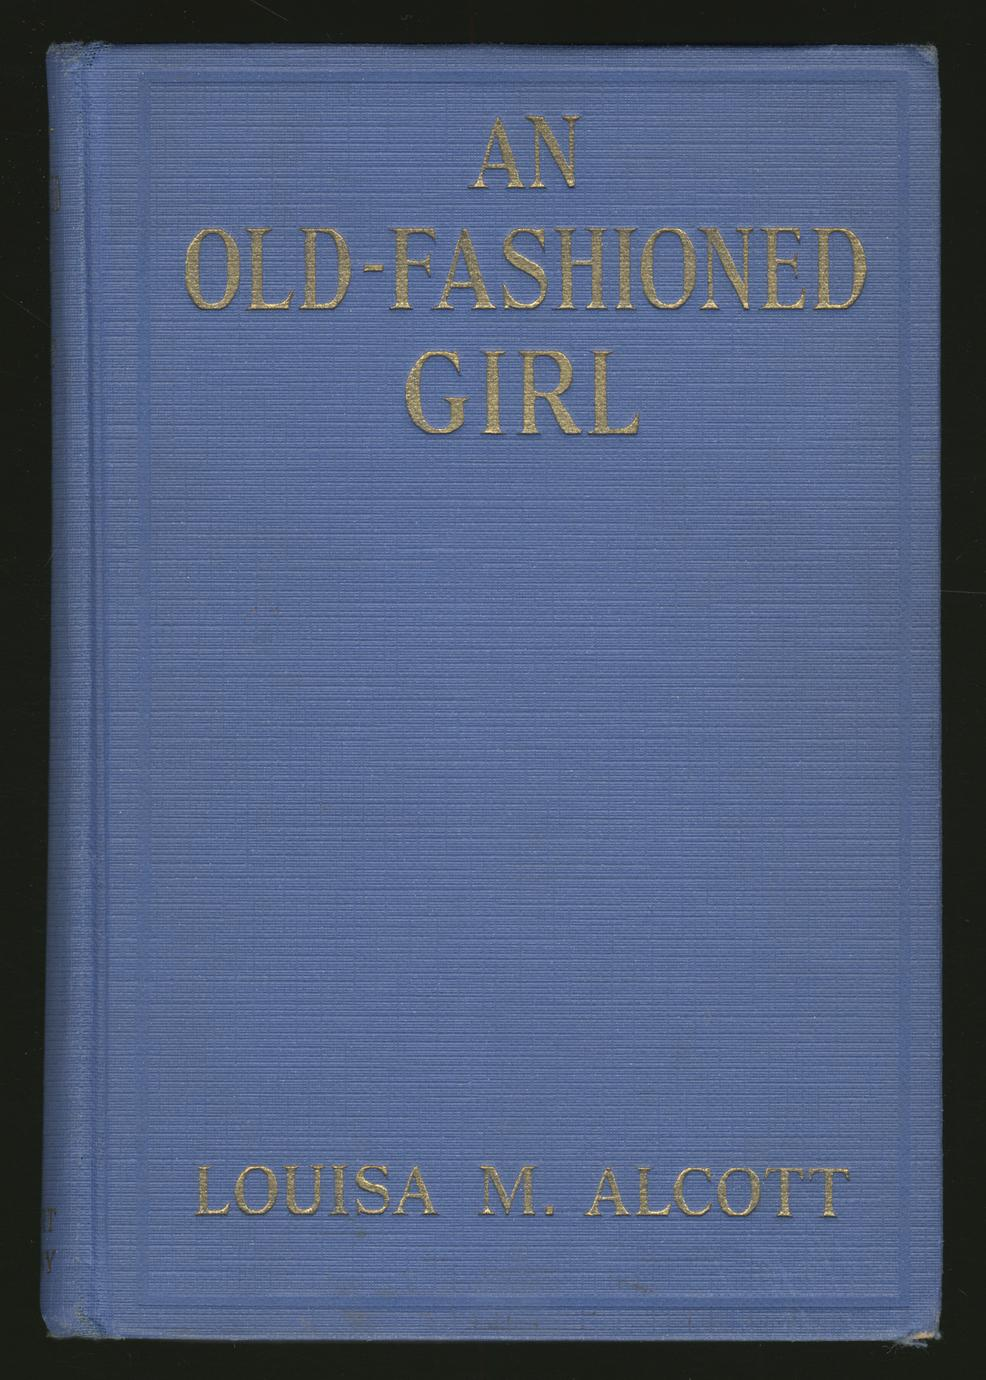 An old fashioned girl (1 of 2)